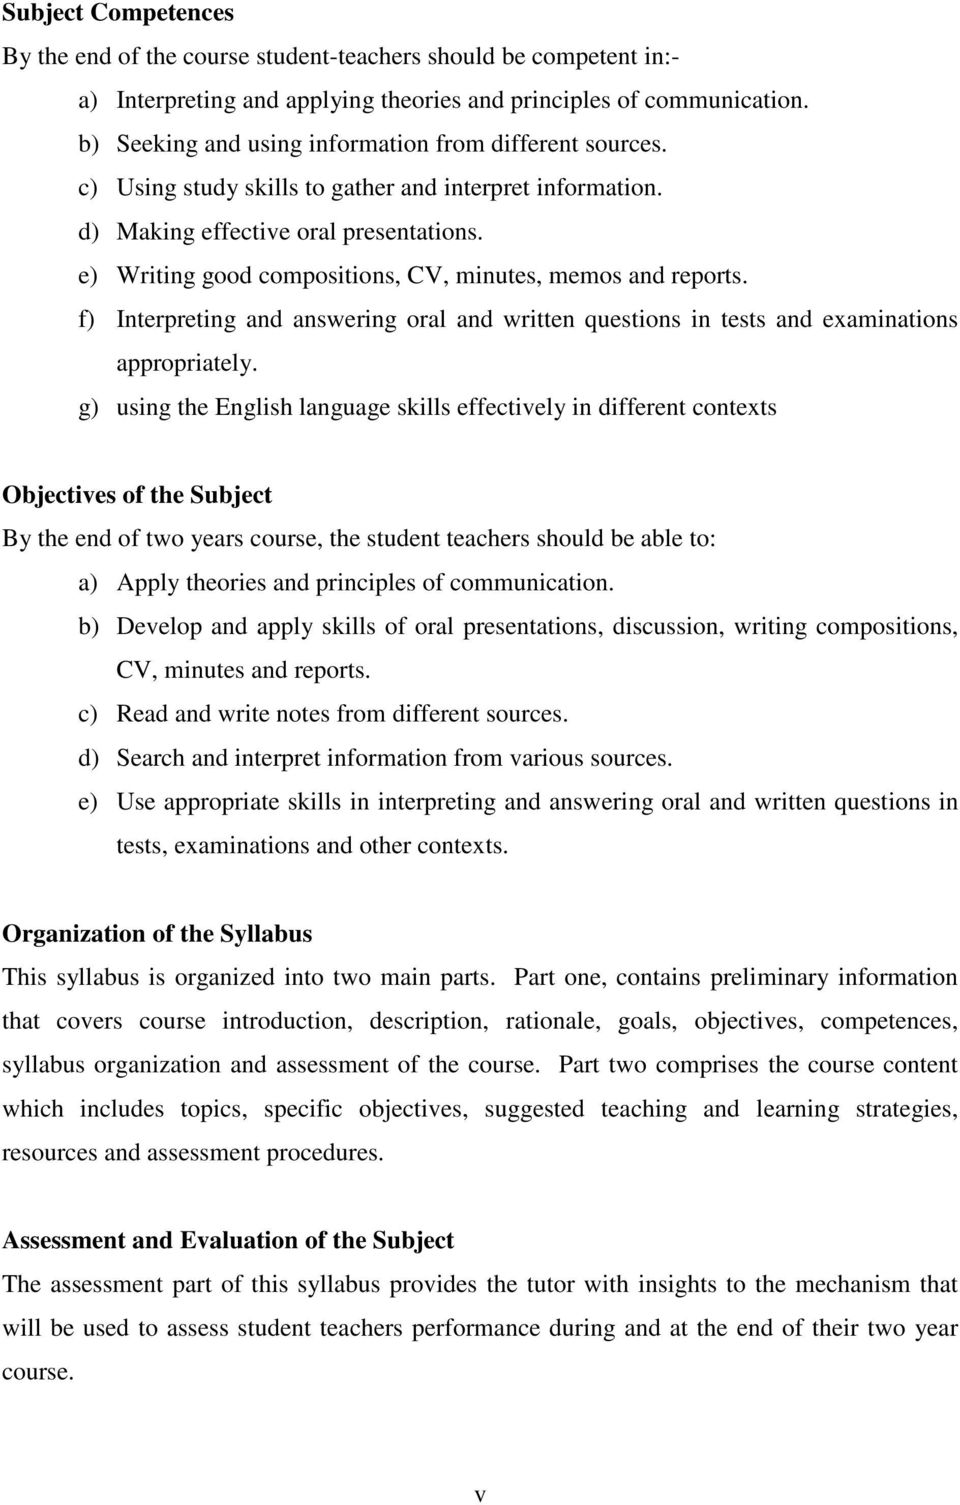 e) Writing good compositions, CV, minutes, memos and reports. f)